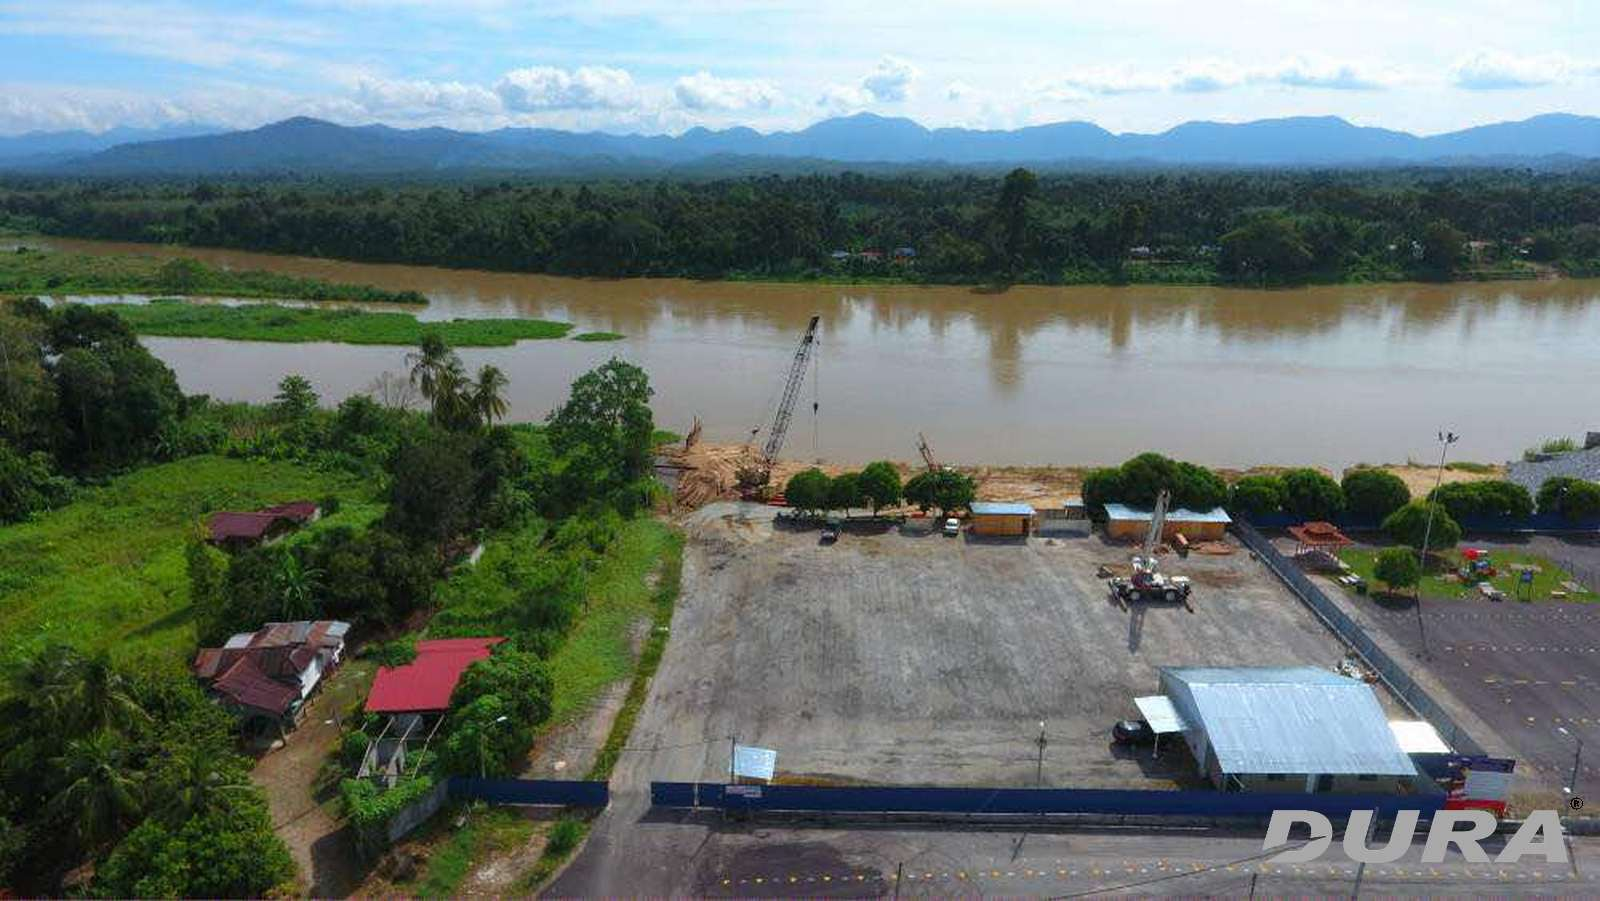 The bridge project site crossing to Sungai Perak.